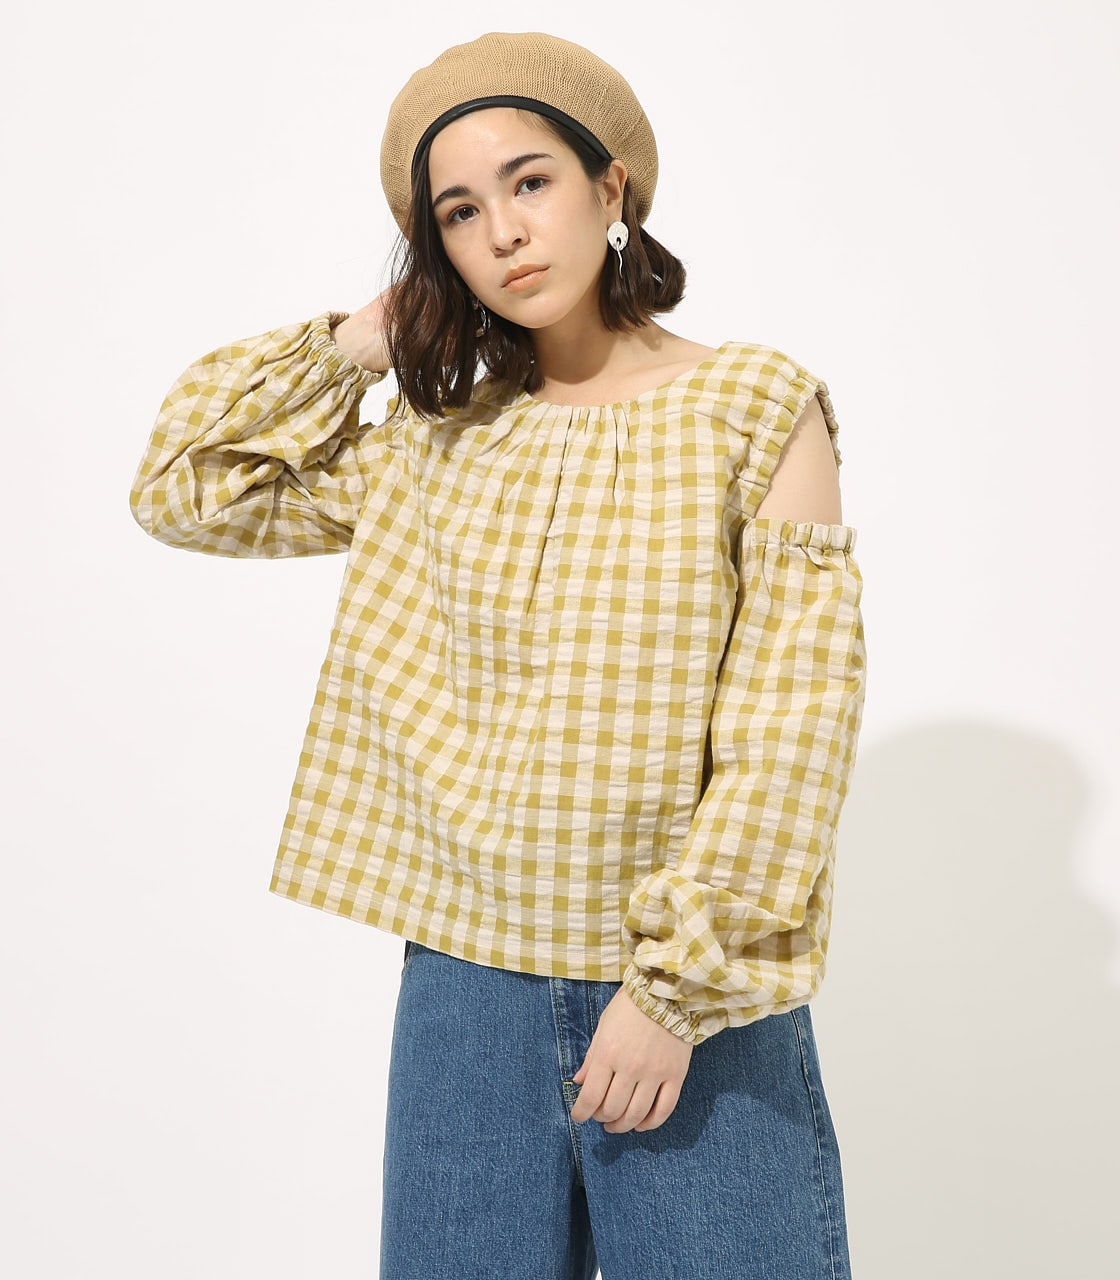 GINGHAM OPEN SHOULDER TOPS 【MOOK49掲載 90053】 詳細画像 柄LIME 1